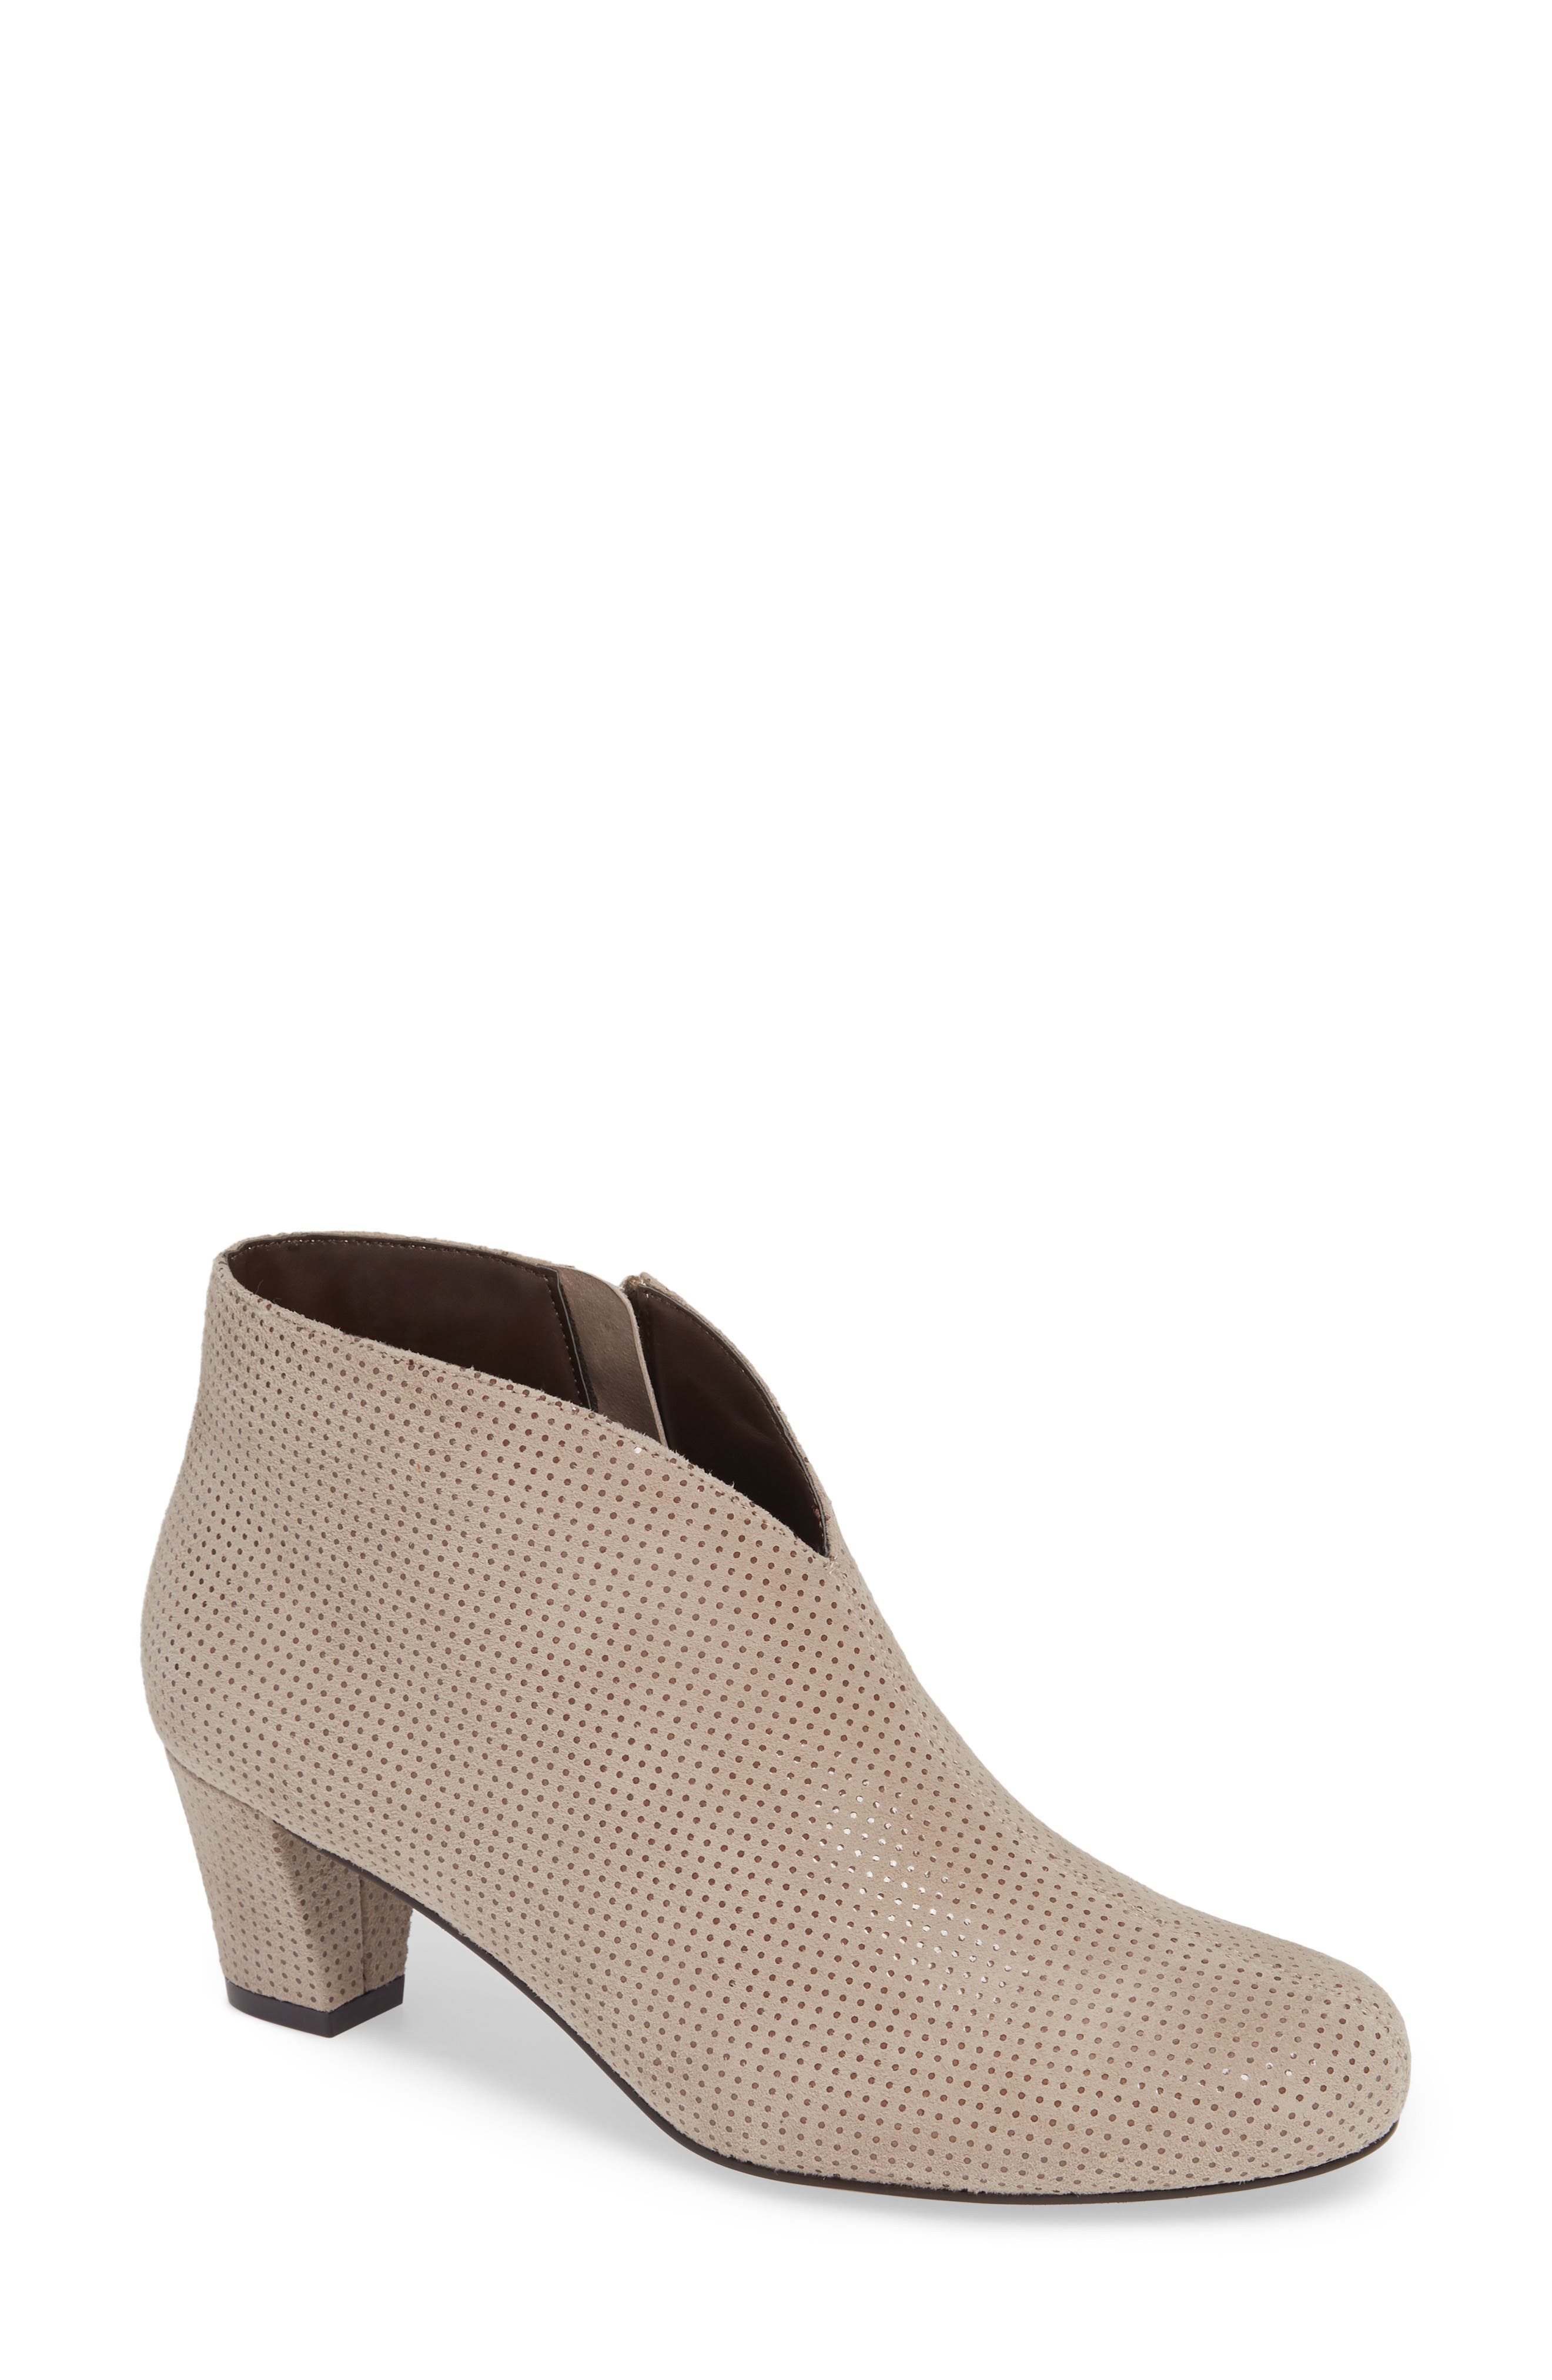 David Tate Fame Boot- Beige